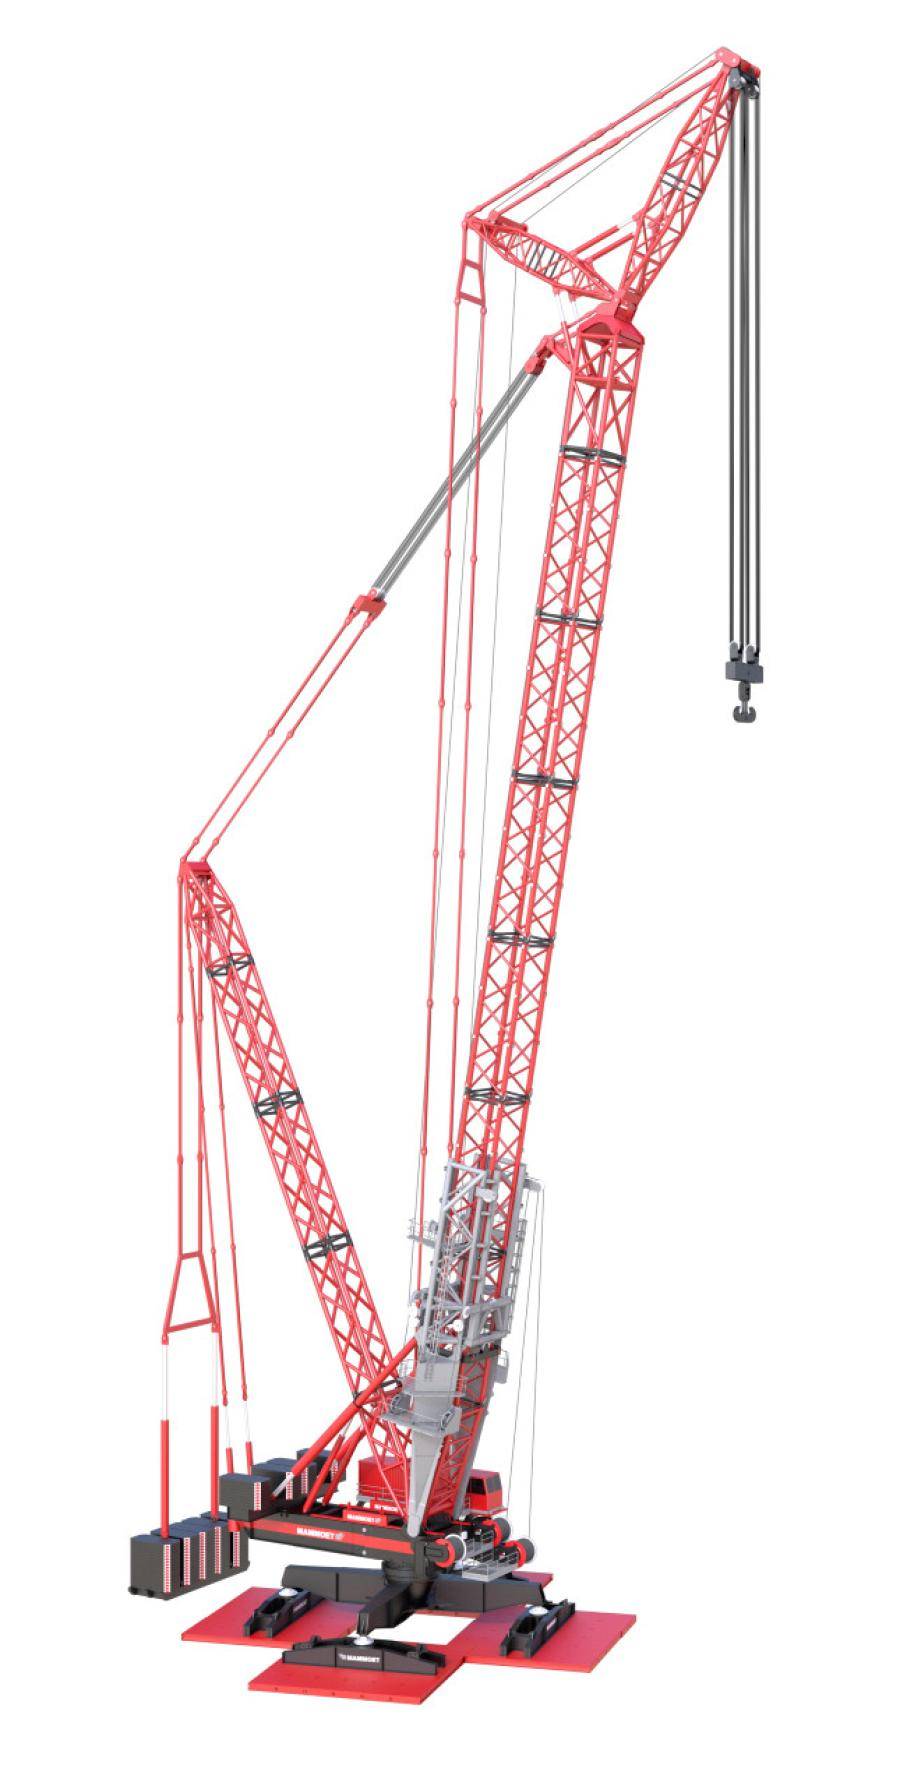 The Focus is a high-capacity crane that can be erected vertically in a very small area.